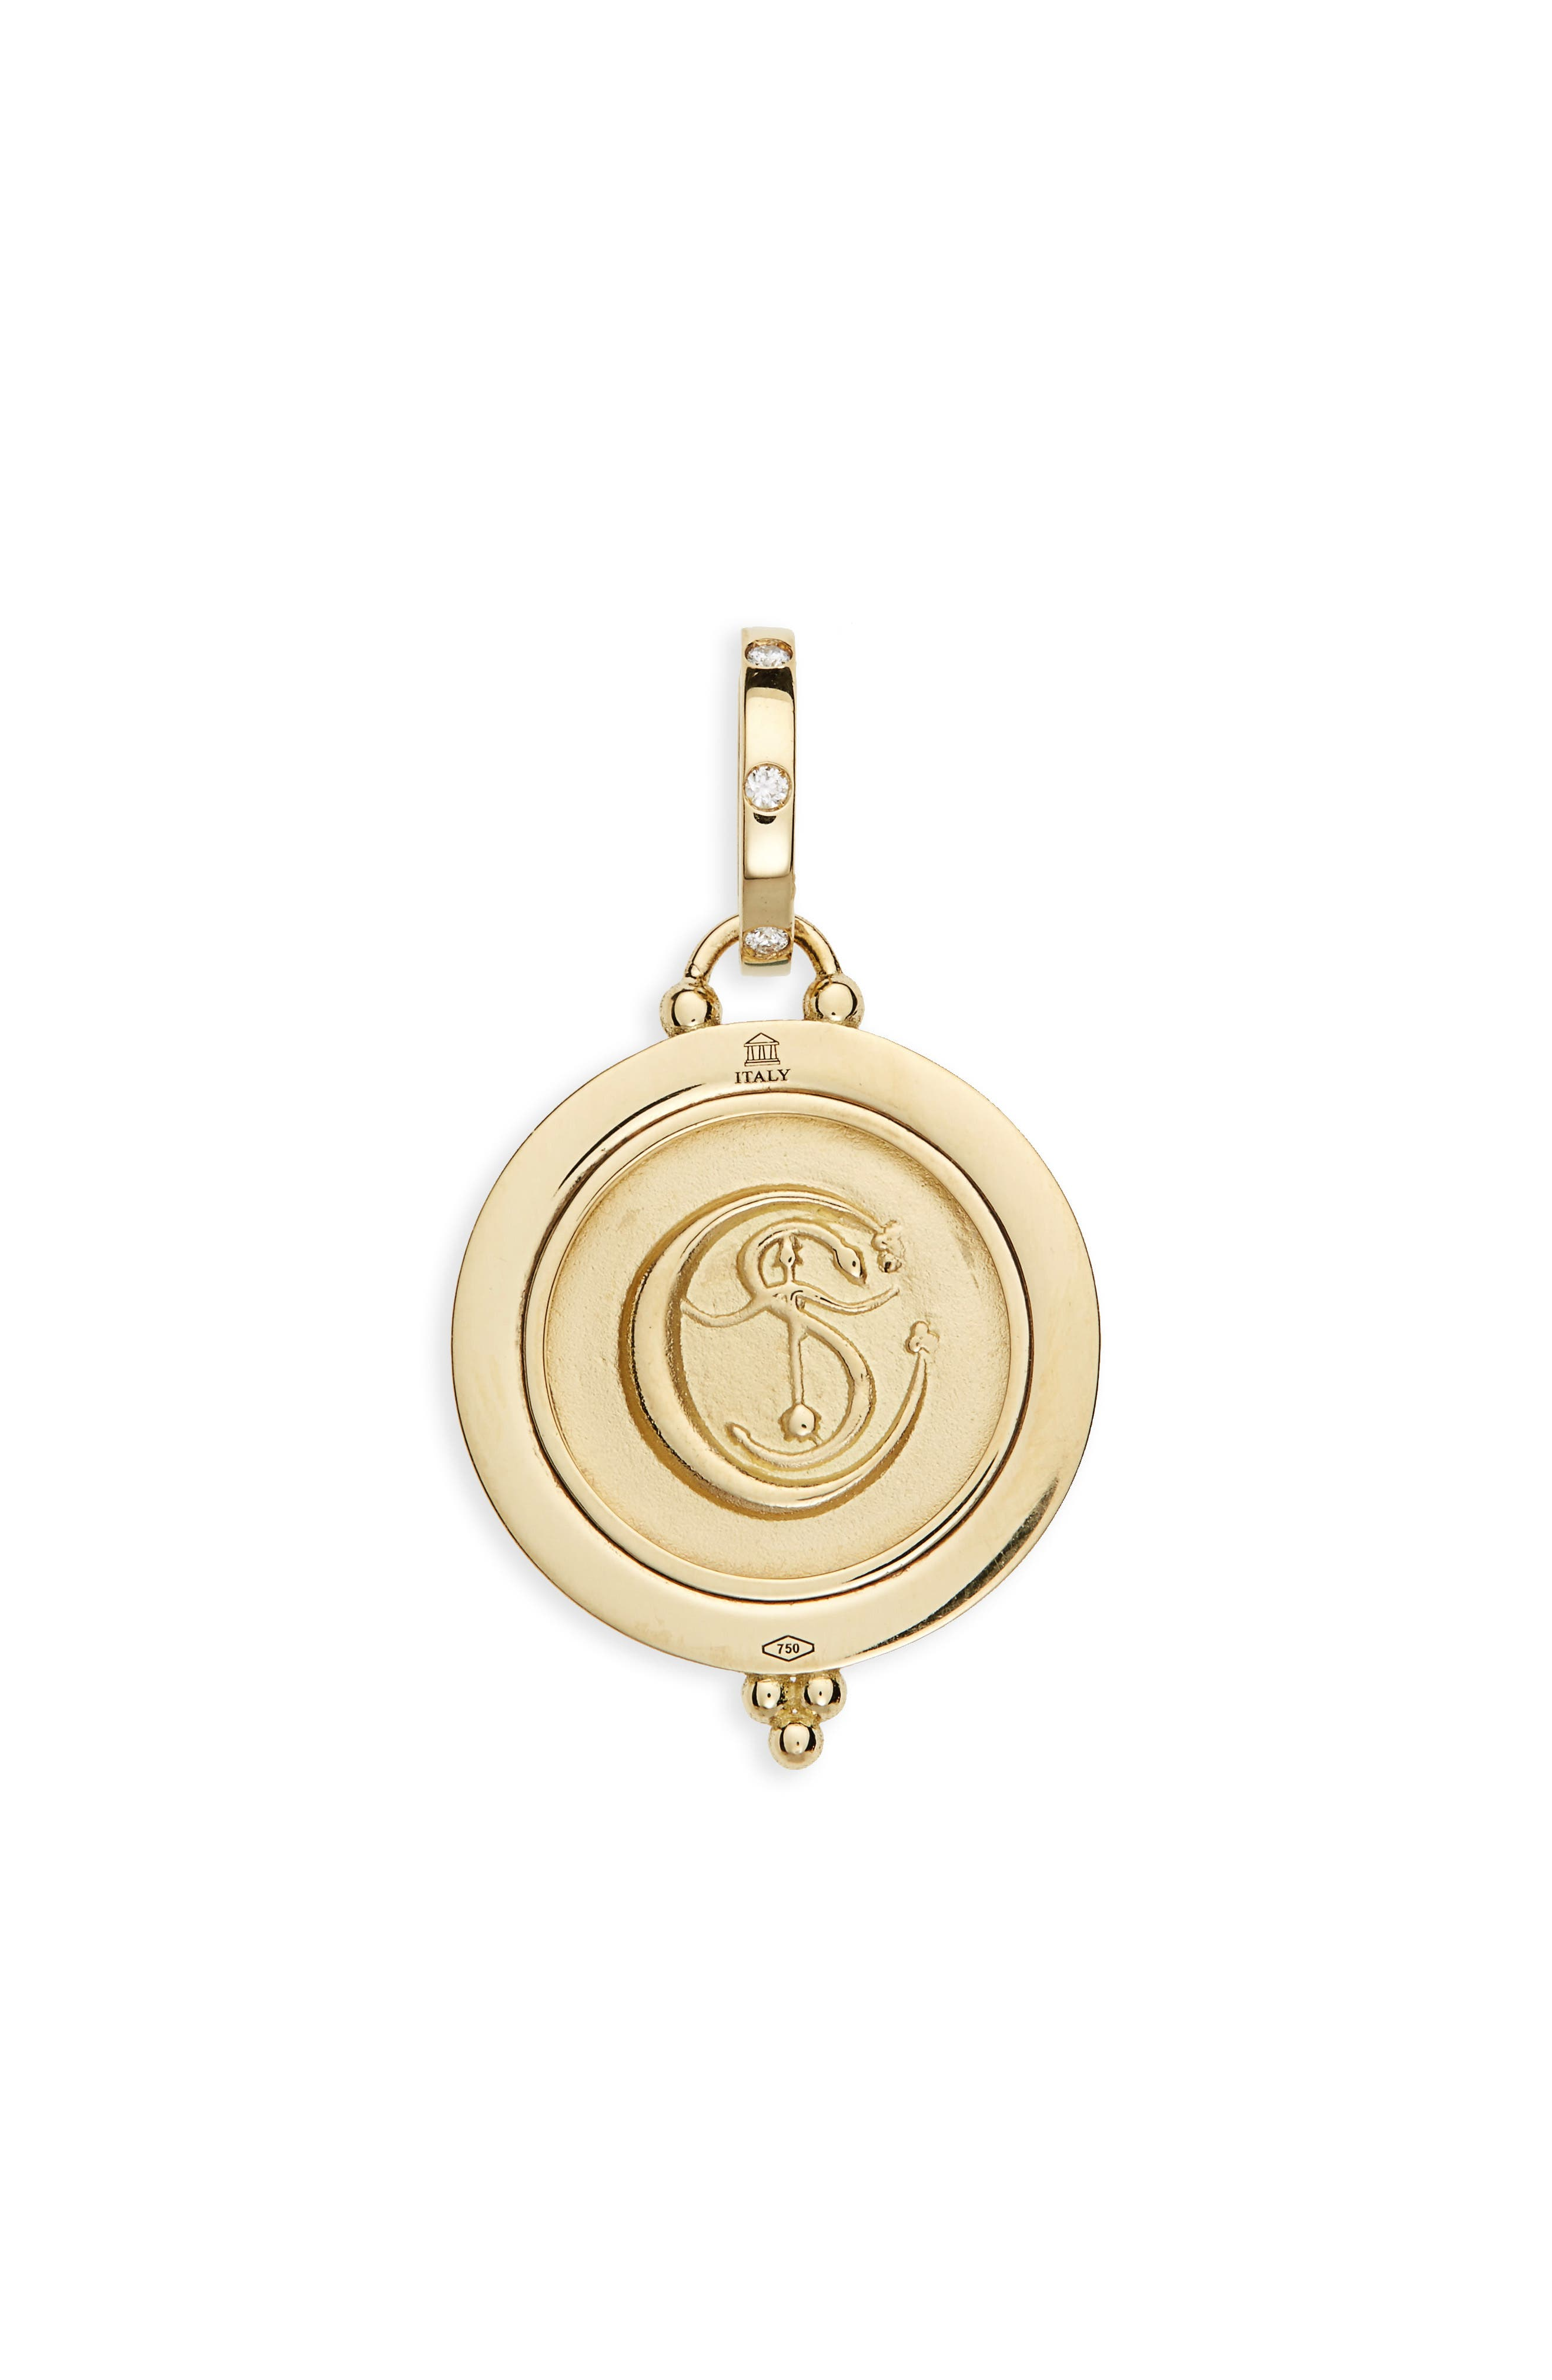 Temple St. Clair Charms Pendant,                             Alternate thumbnail 2, color,                             YELLOW GOLD